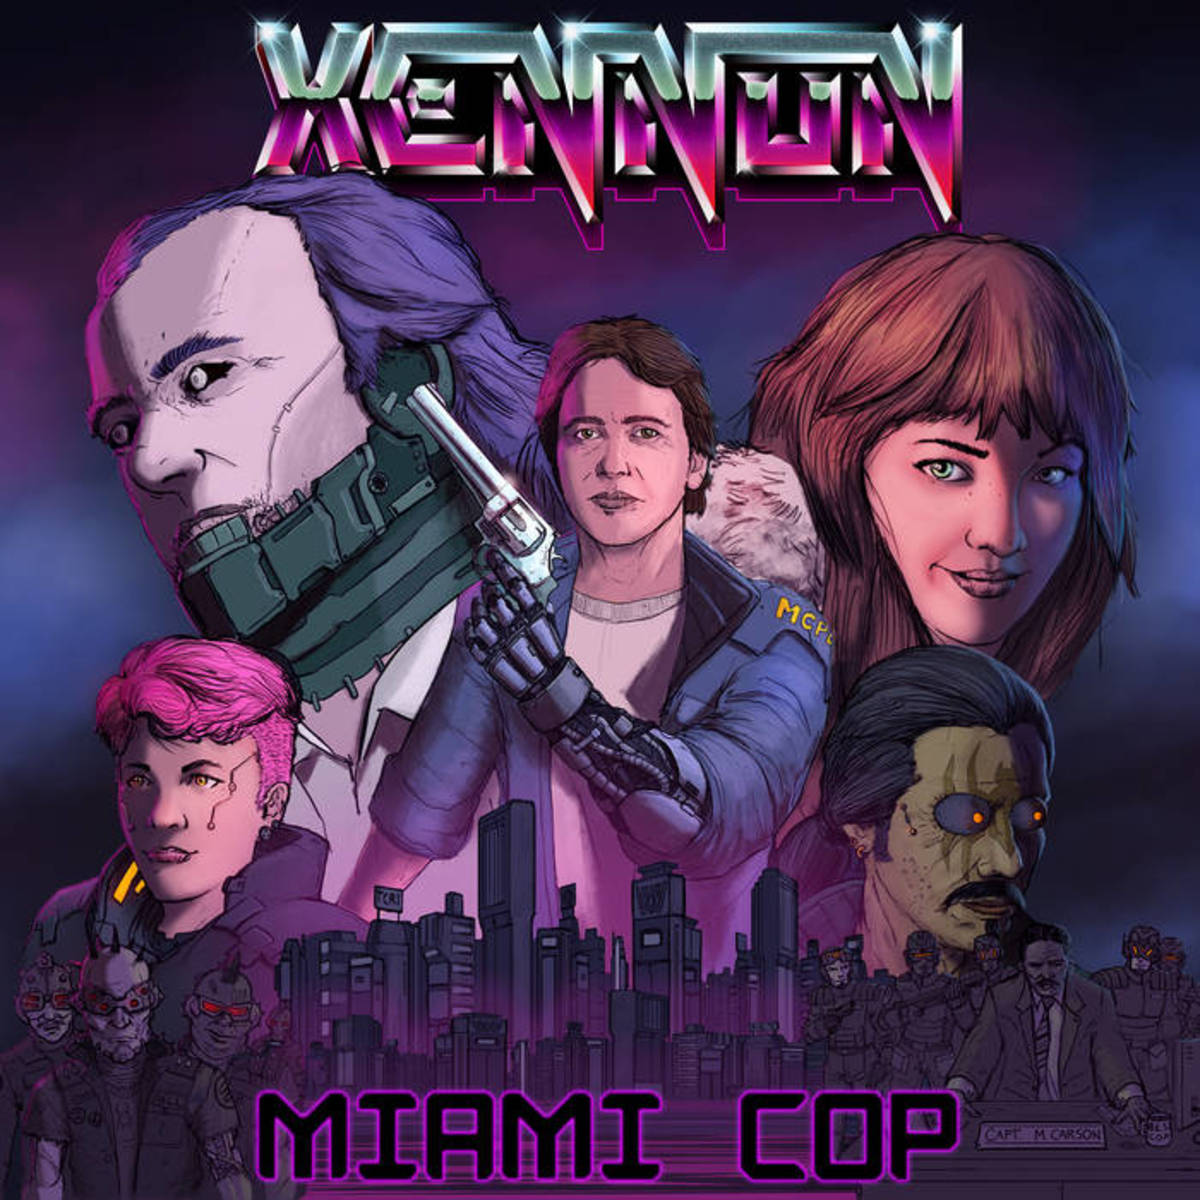 synthfam-album-interview-miami-cop-by-xennon